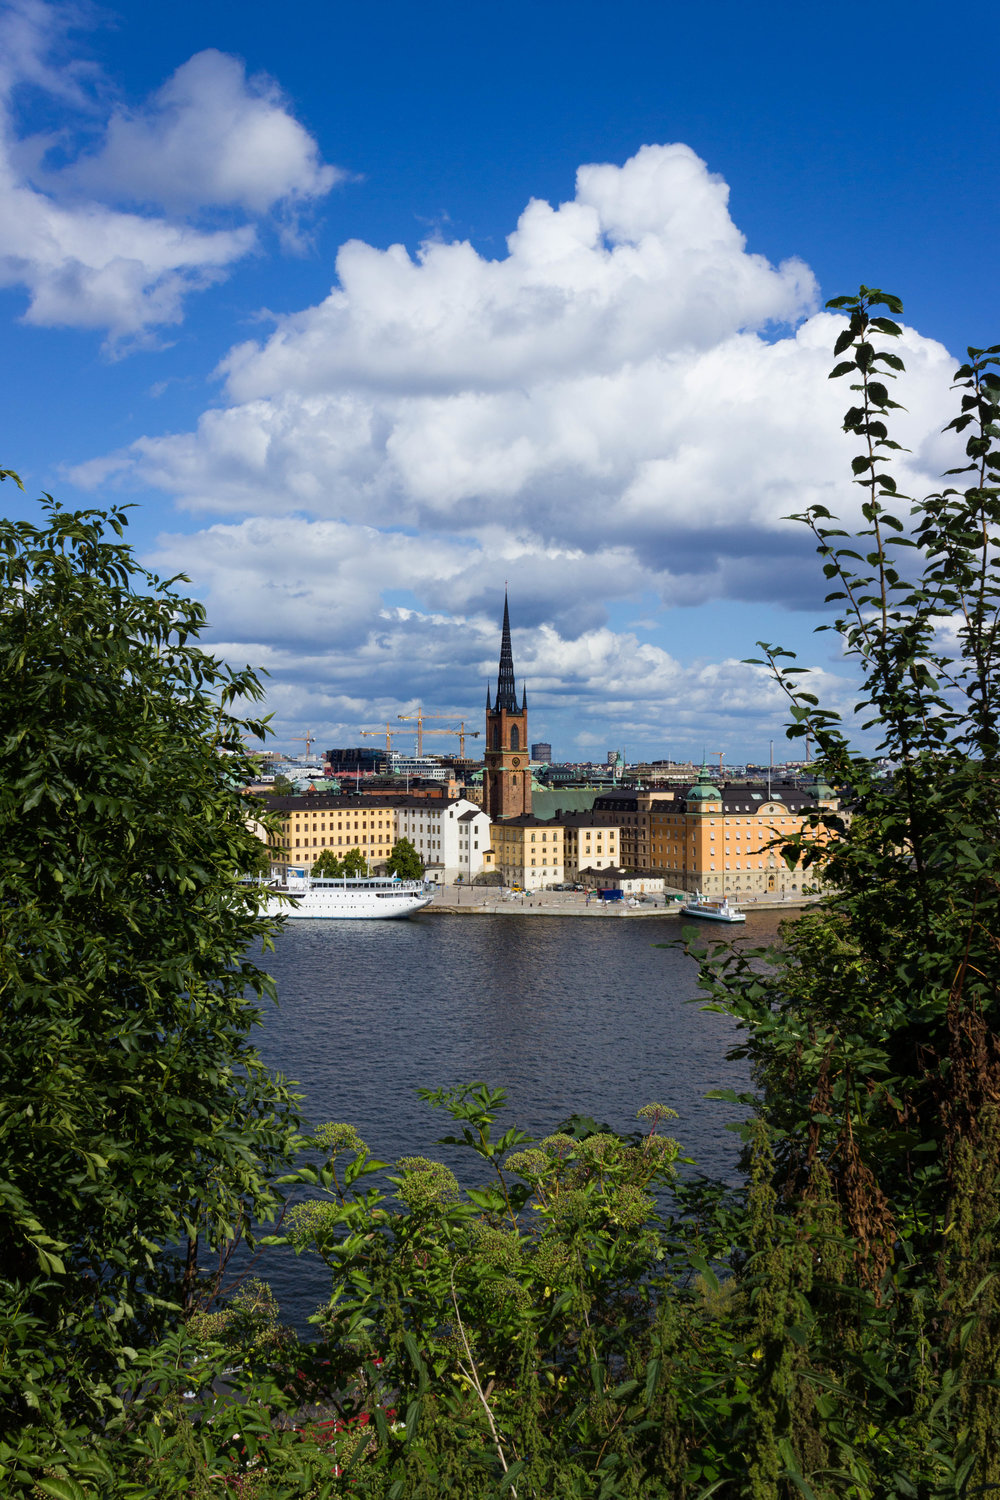 Stockholm City from Sodermalm (old town)